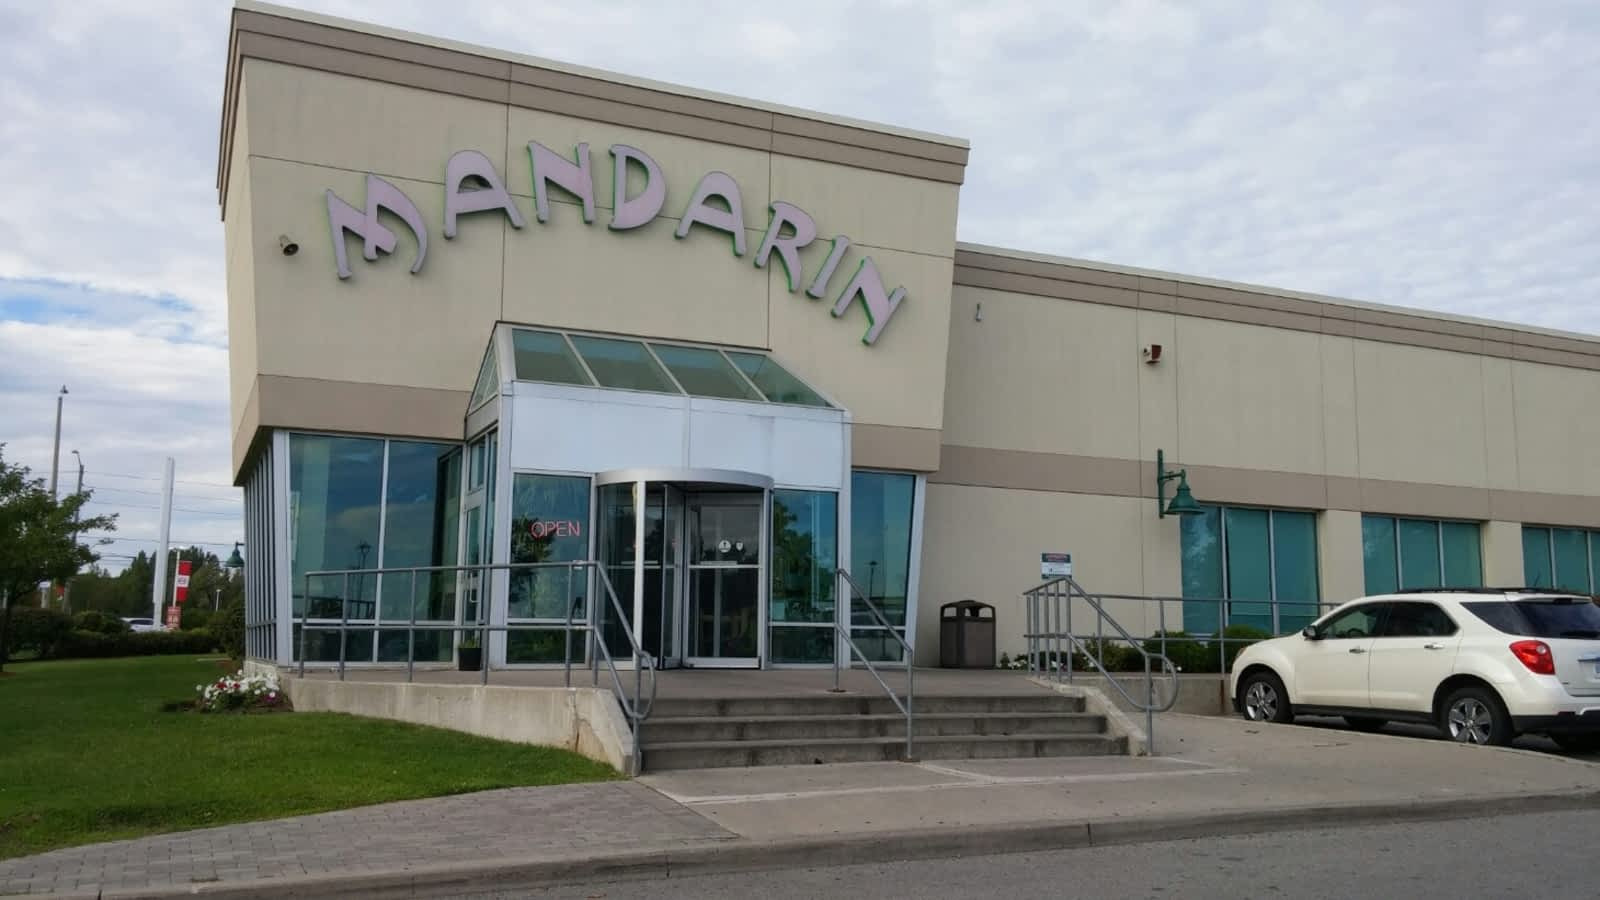 Mandarin restaurant 1319 airport boulevard oshawa on for Asian cuisine oshawa